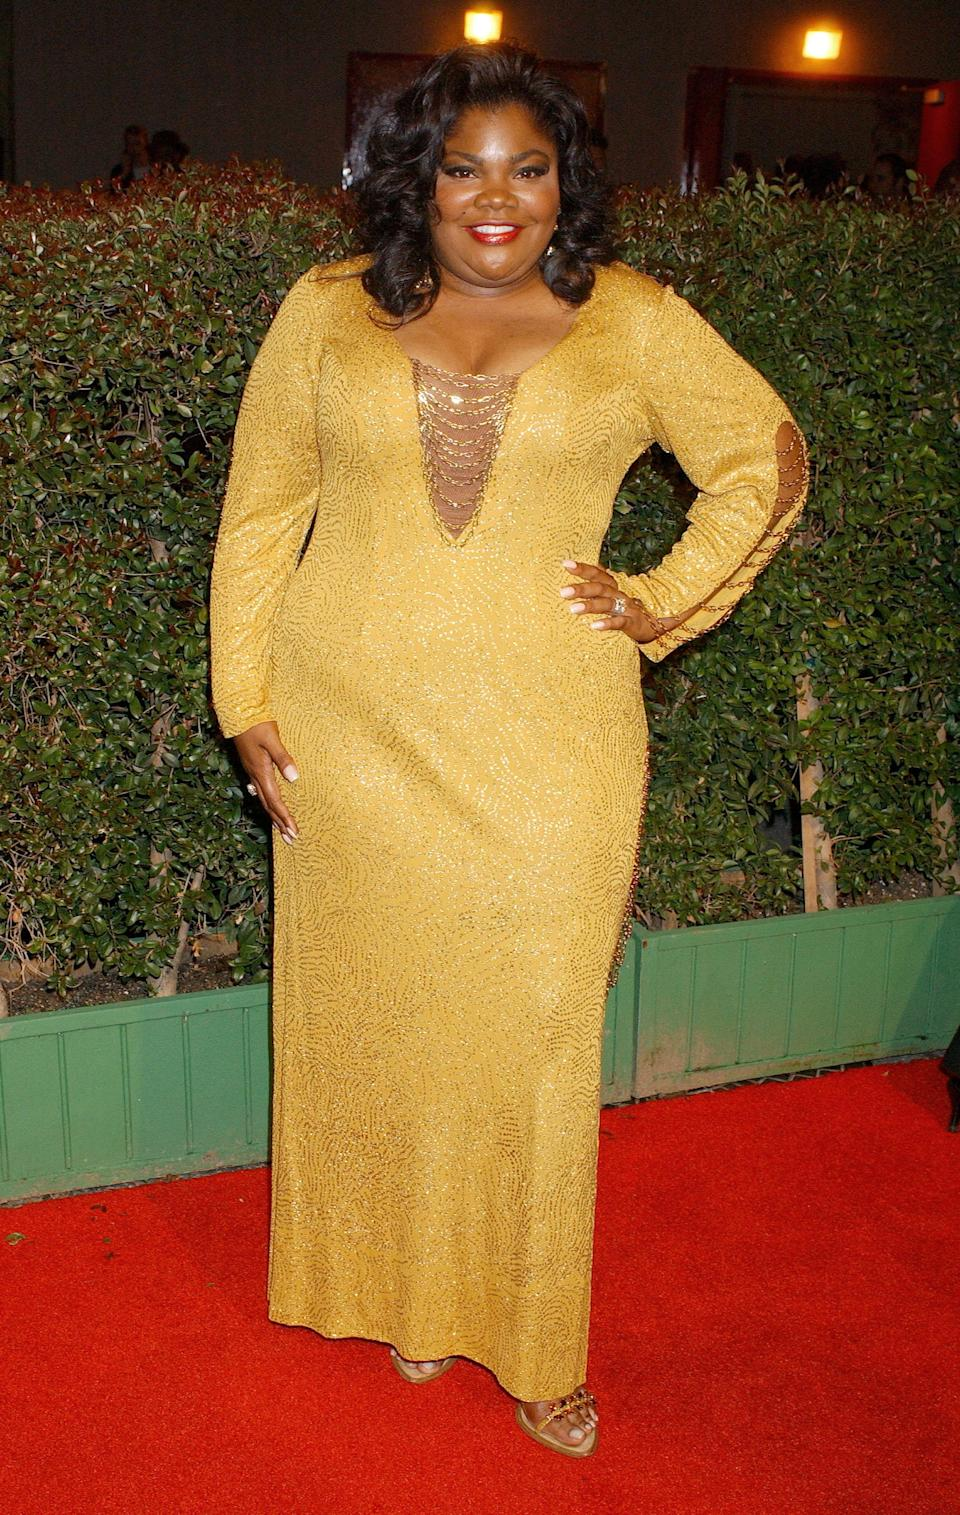 Mo'Nique lost out after winning an Oscar (Photo by Gregg DeGuire/WireImage)